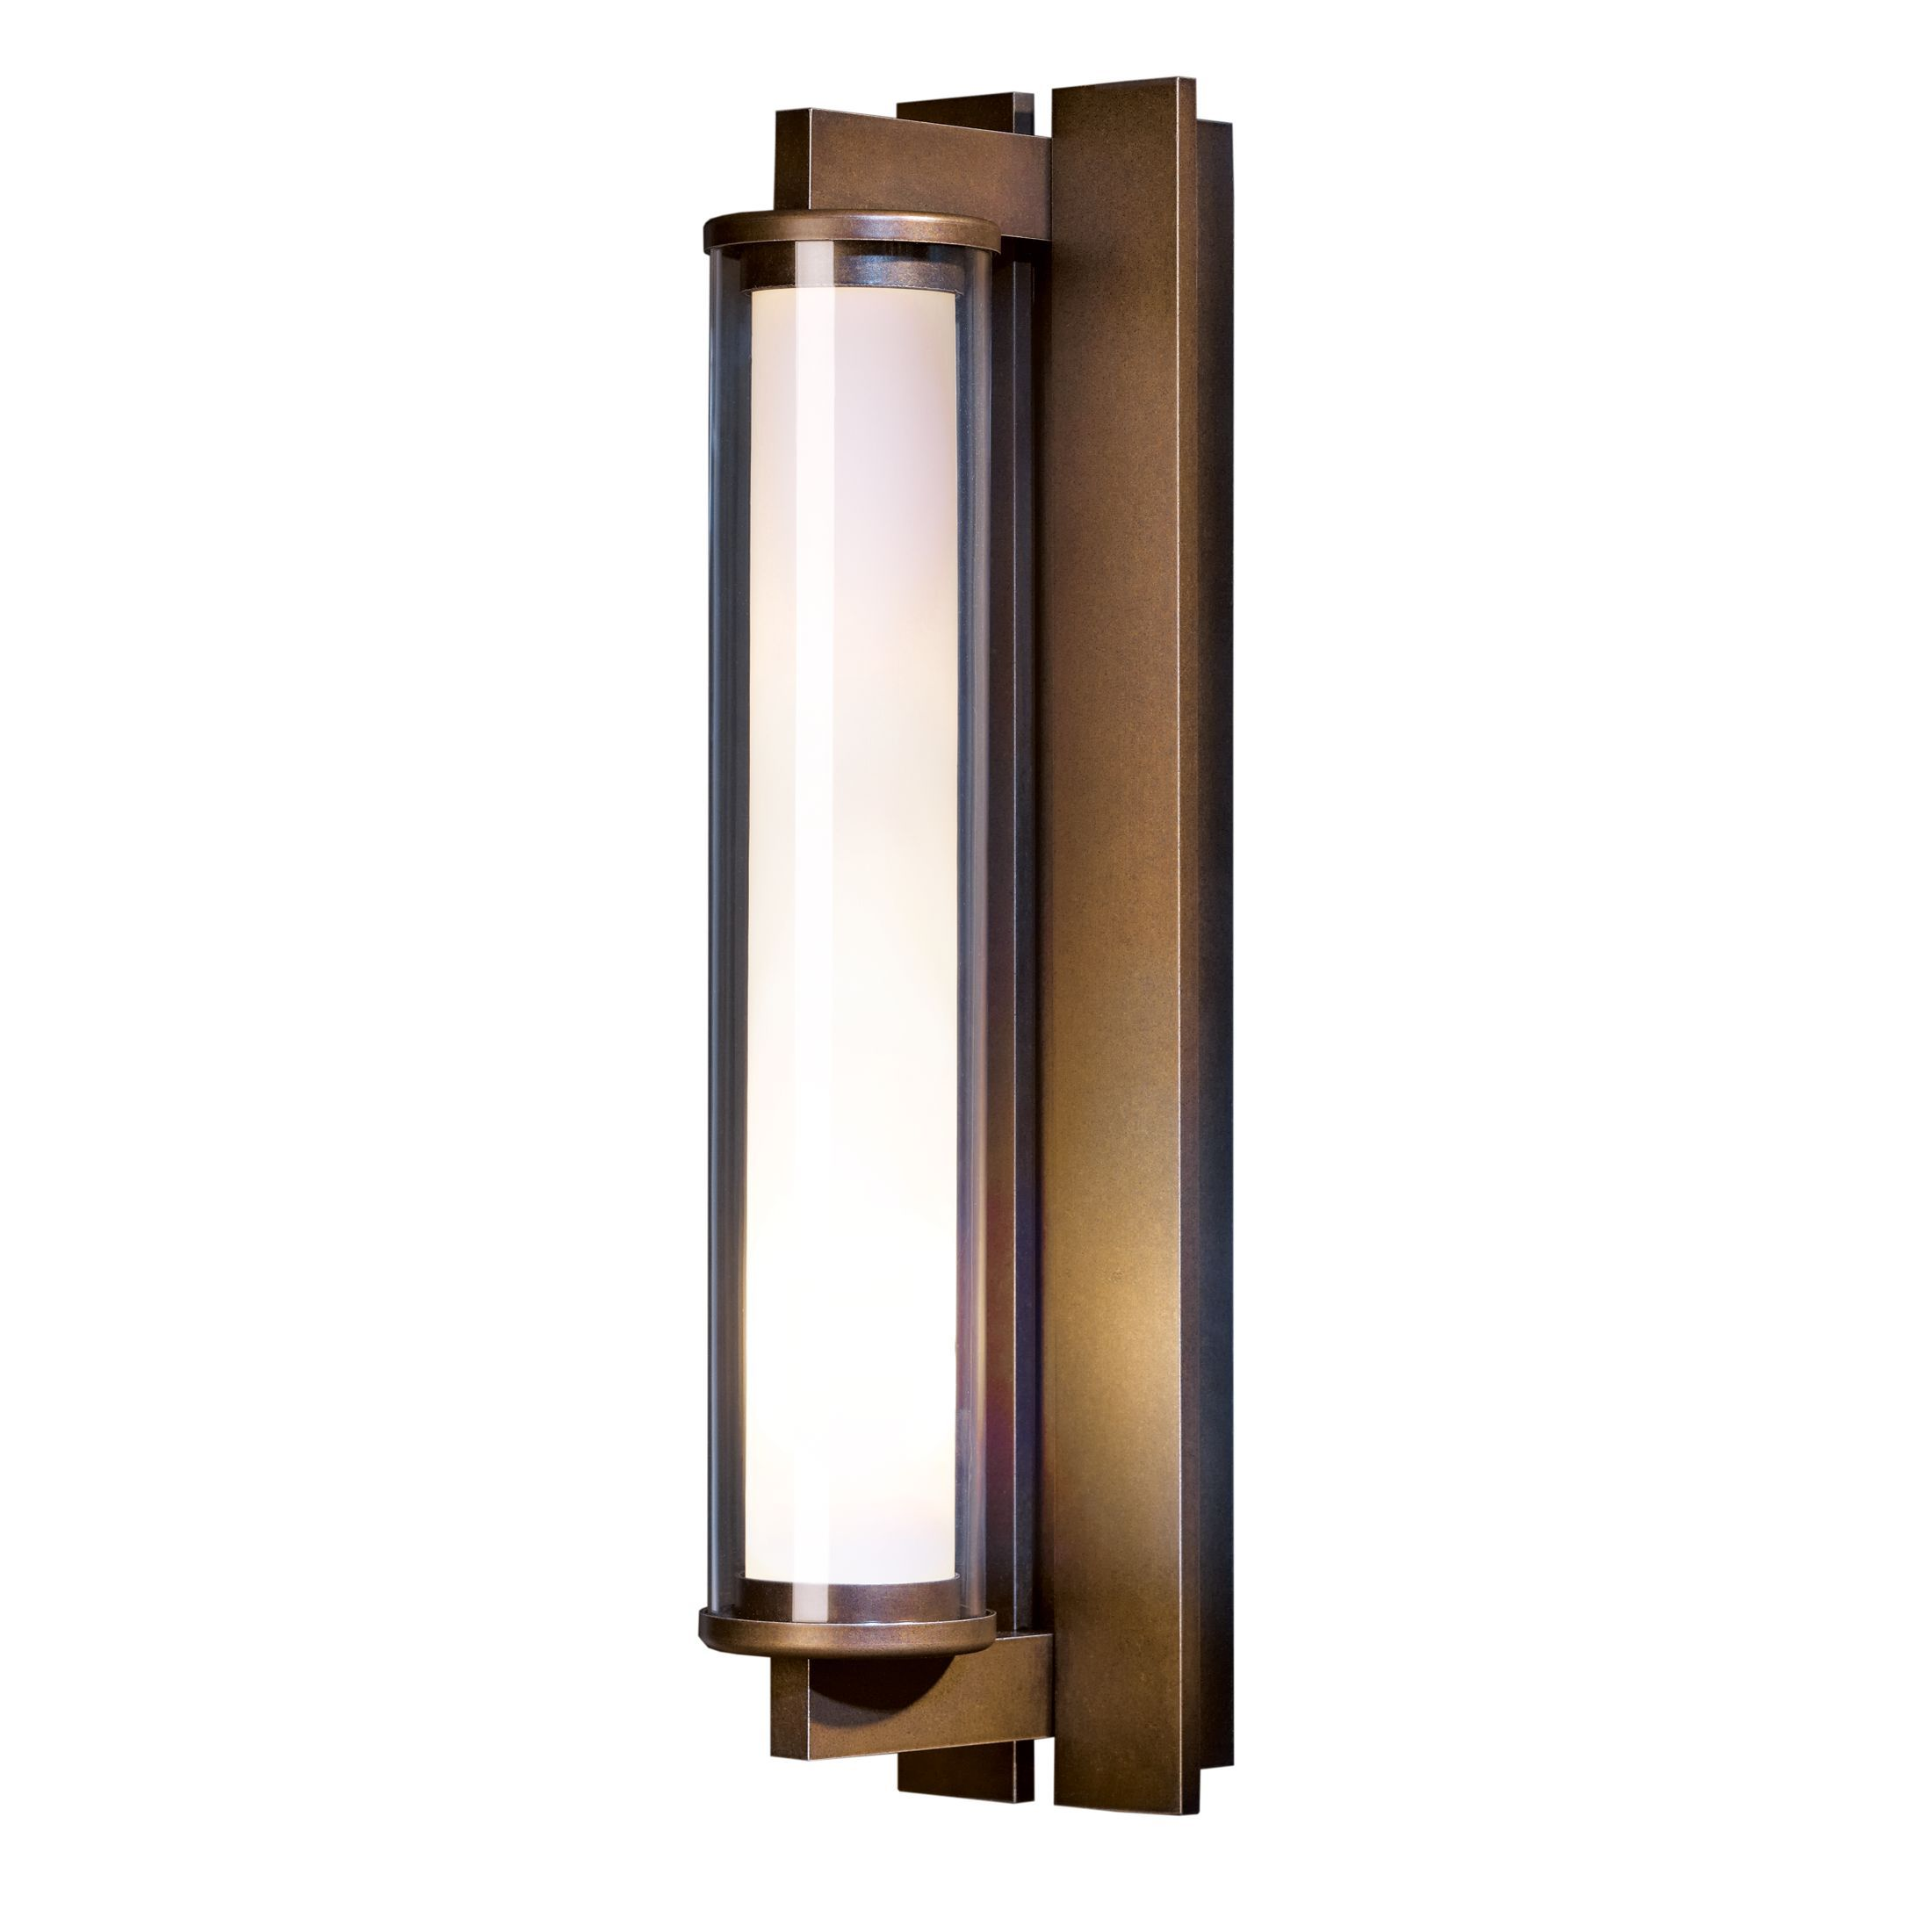 of sconce fixtures lights sconces tuscany wall exterior